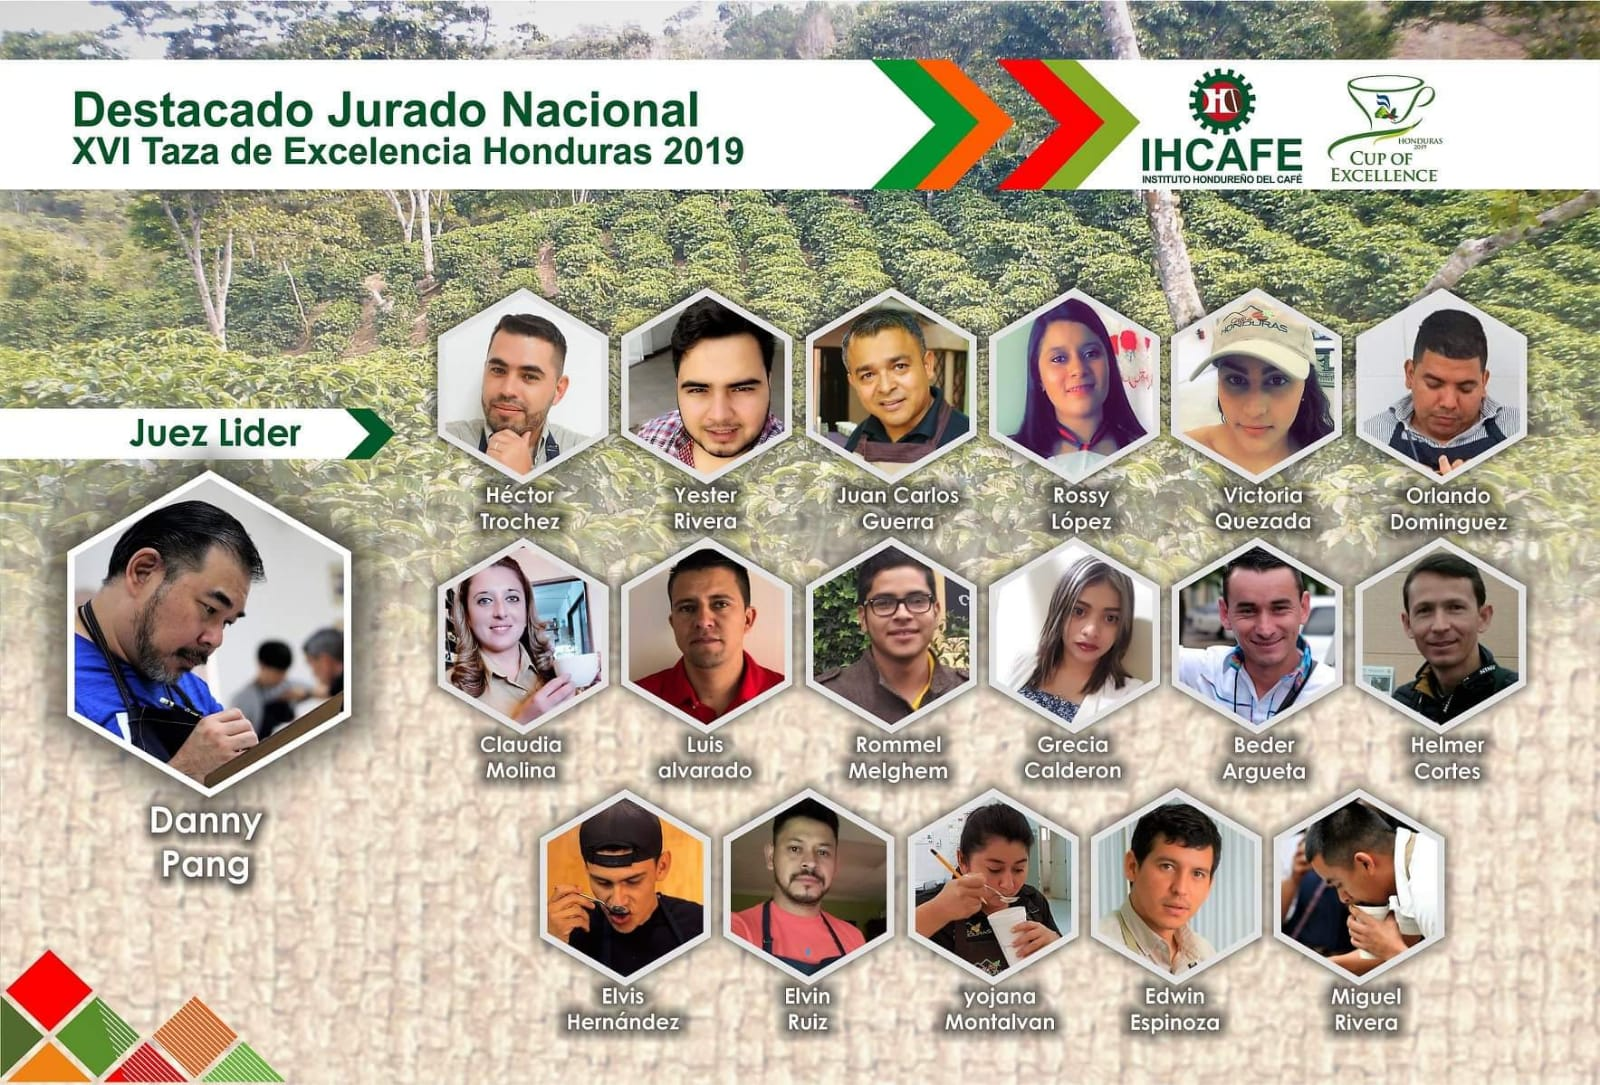 Honduras 2019 - Alliance For Coffee Excellence